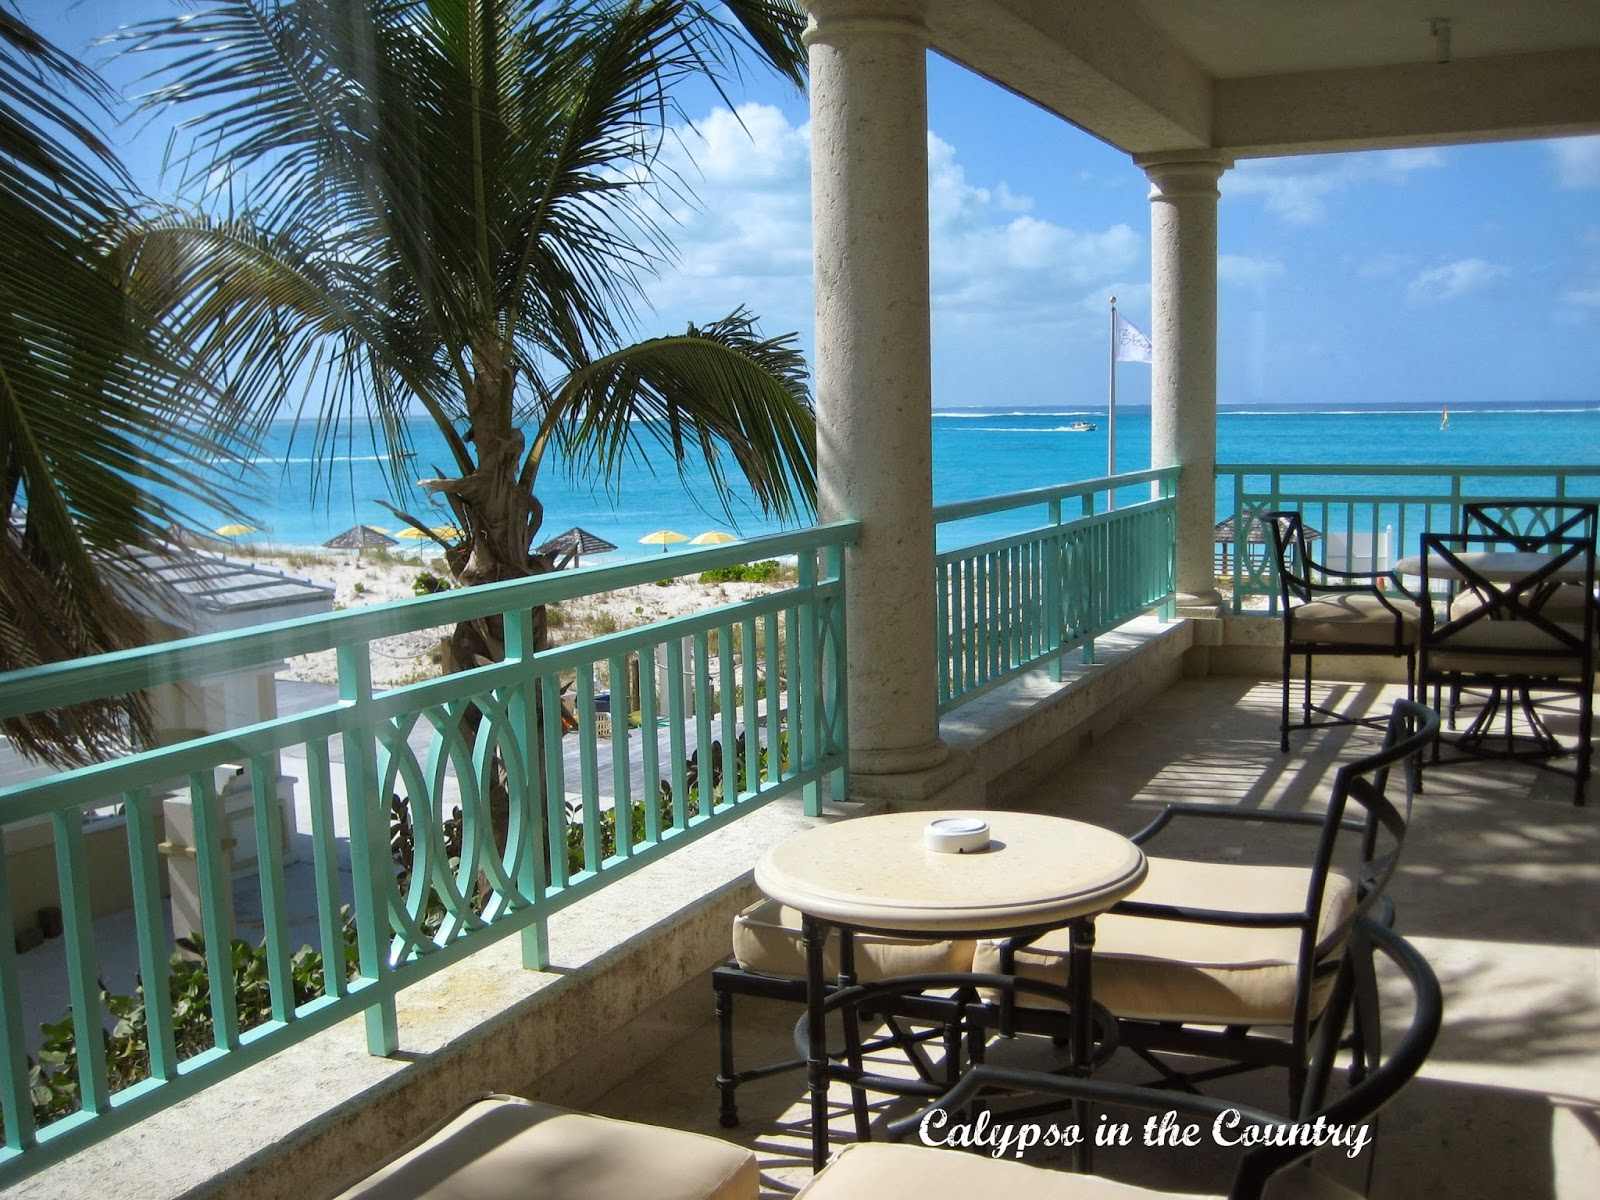 Balcony at the Palms Turks and Caicos